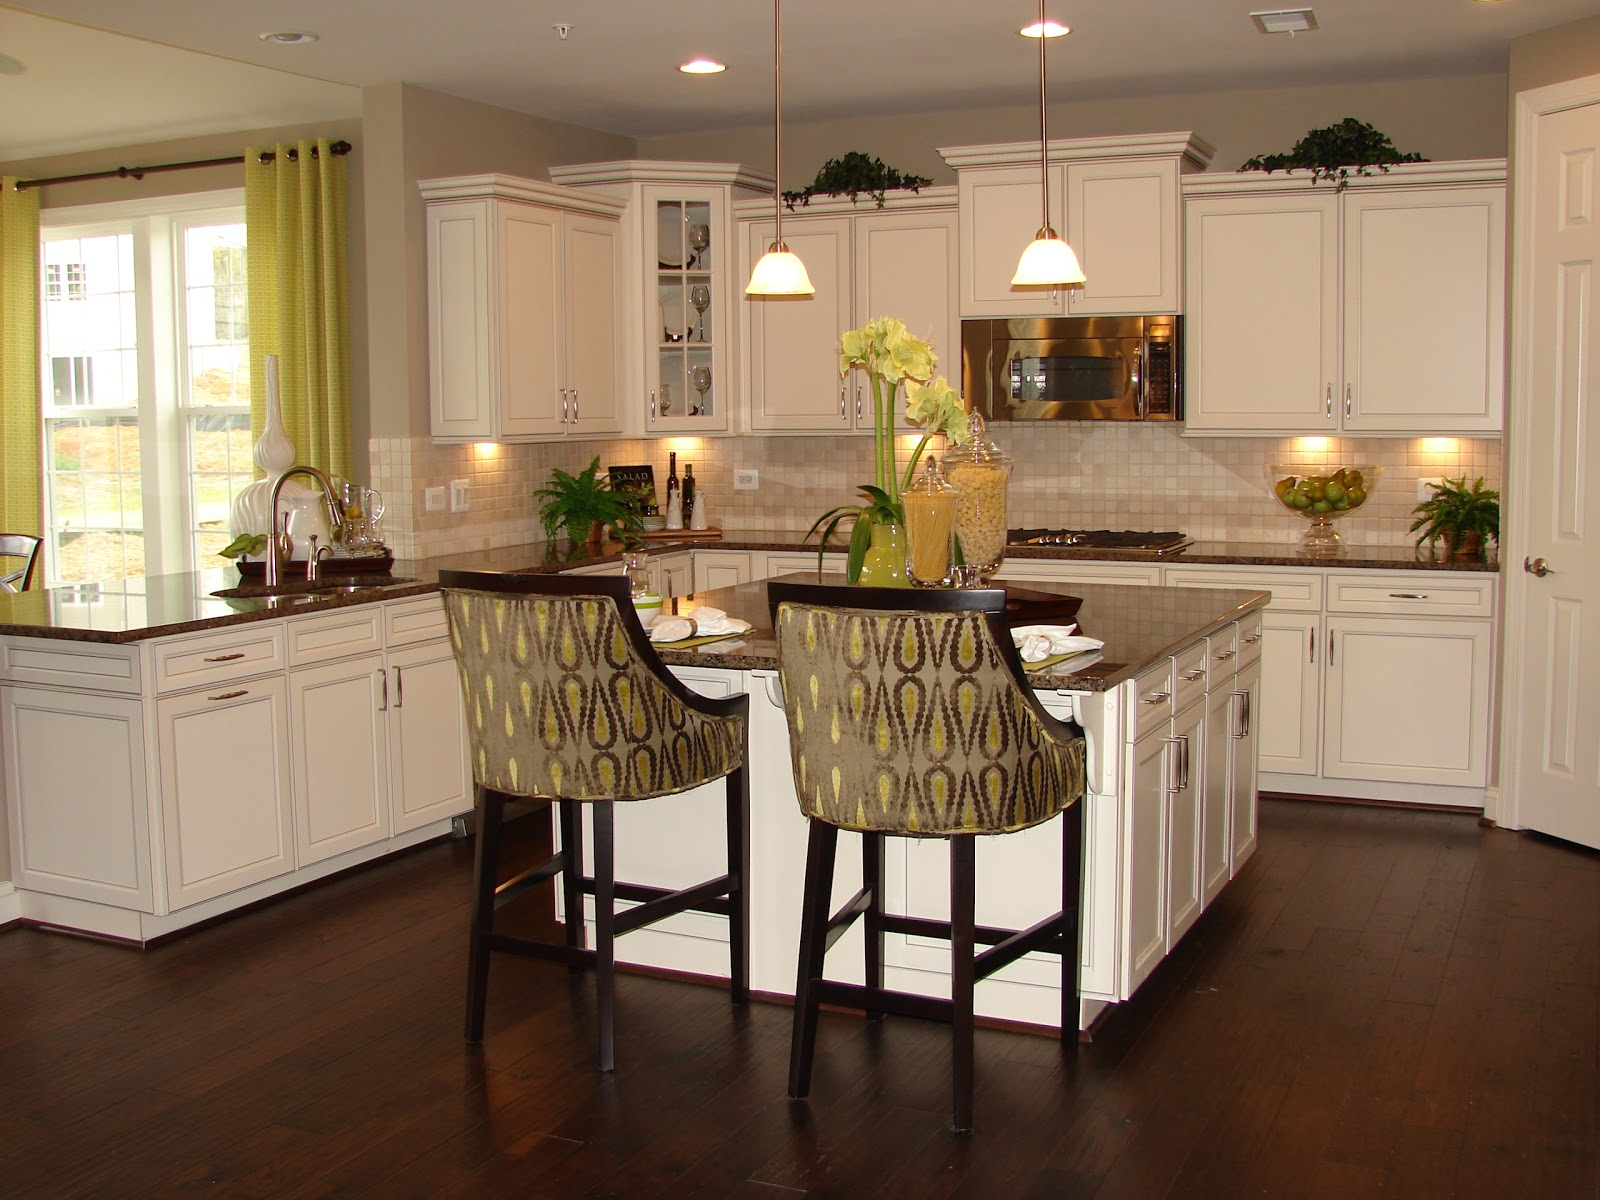 Off White Kitchen Cabinets With Brown Granite Building A Ryan Home Avalon Trying To Recreate This